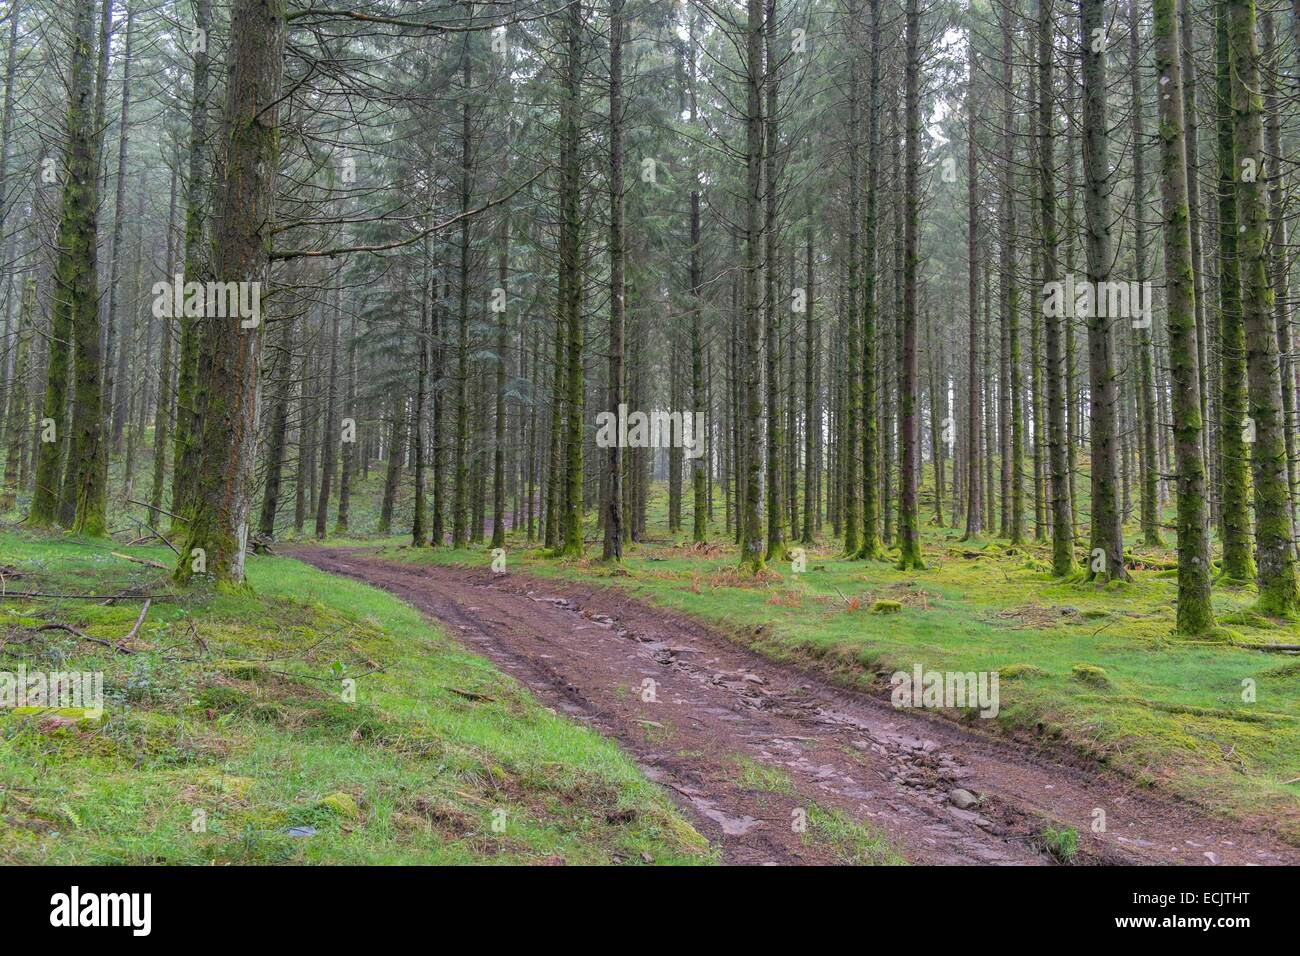 France, Correze, forest of conifer trees, Parc Naturel Regional de Millevaches (Millevaches Regional Natural Park) - Stock Image